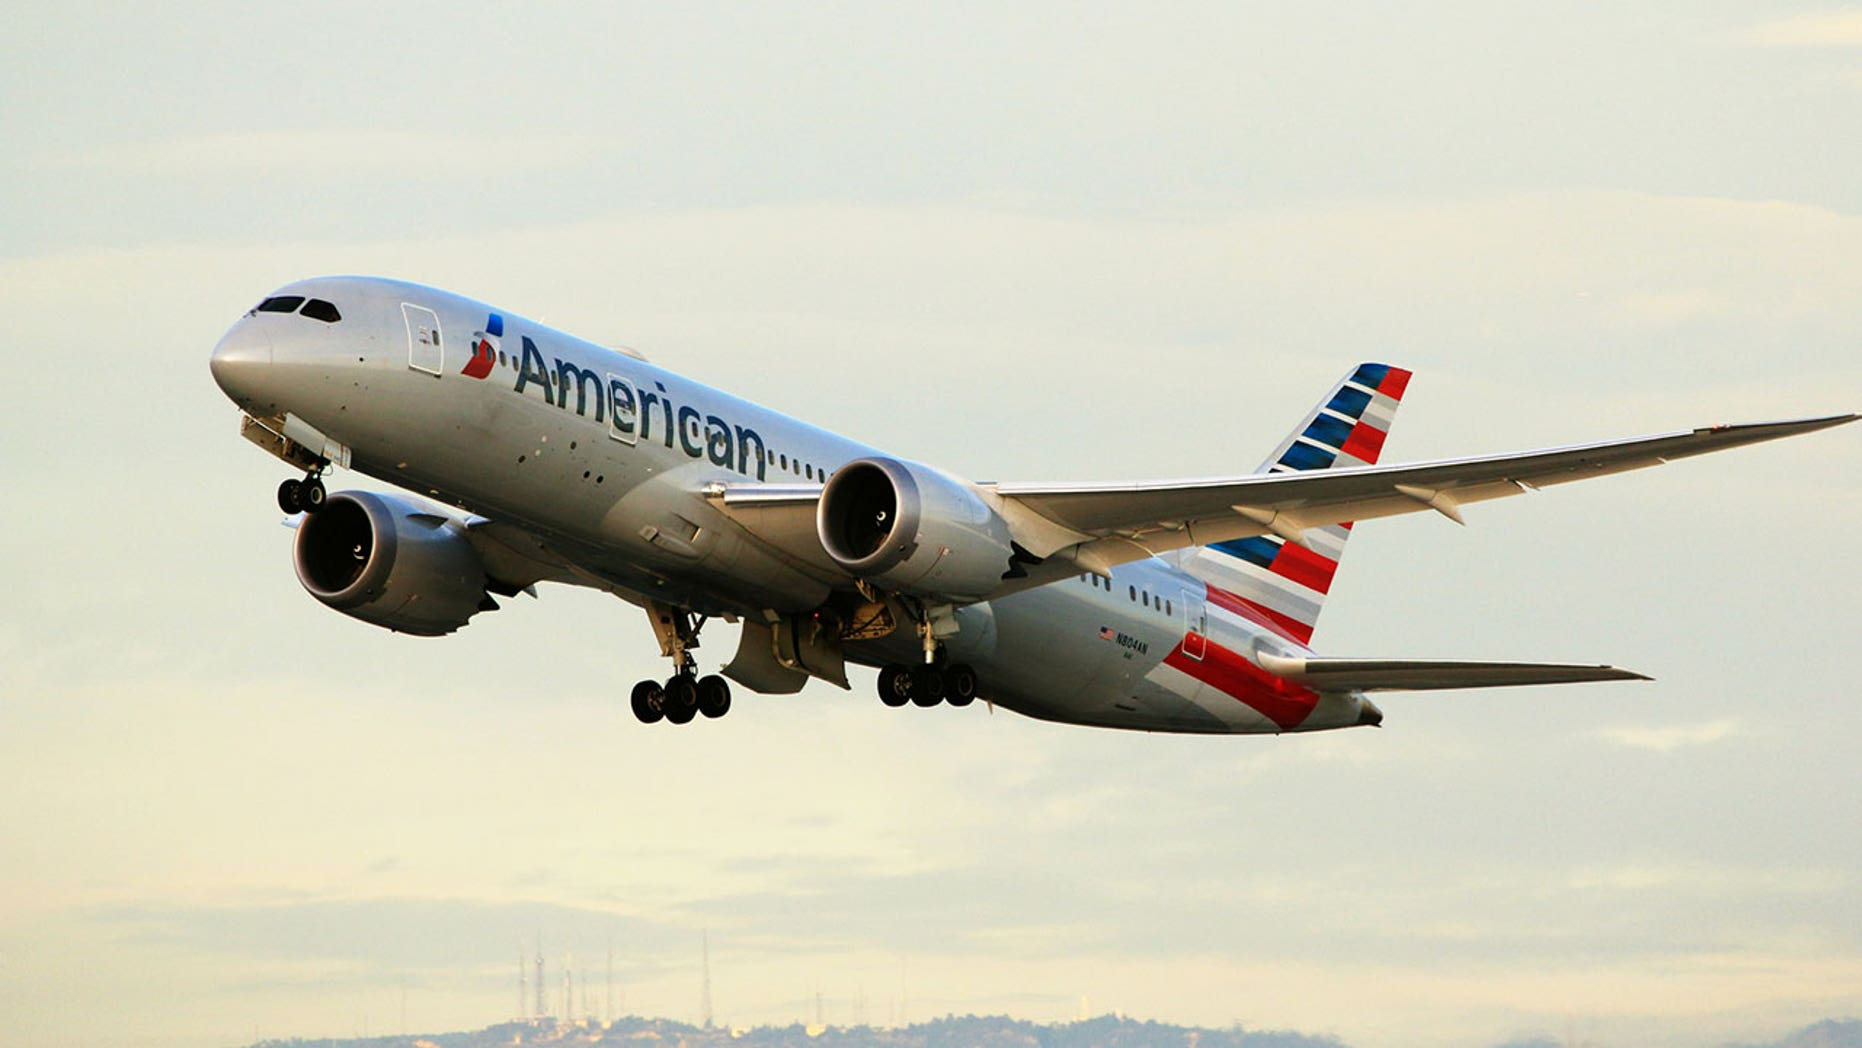 Airlines are giving away miles to people who donate money to Hurricane Harvey disaster relief programs